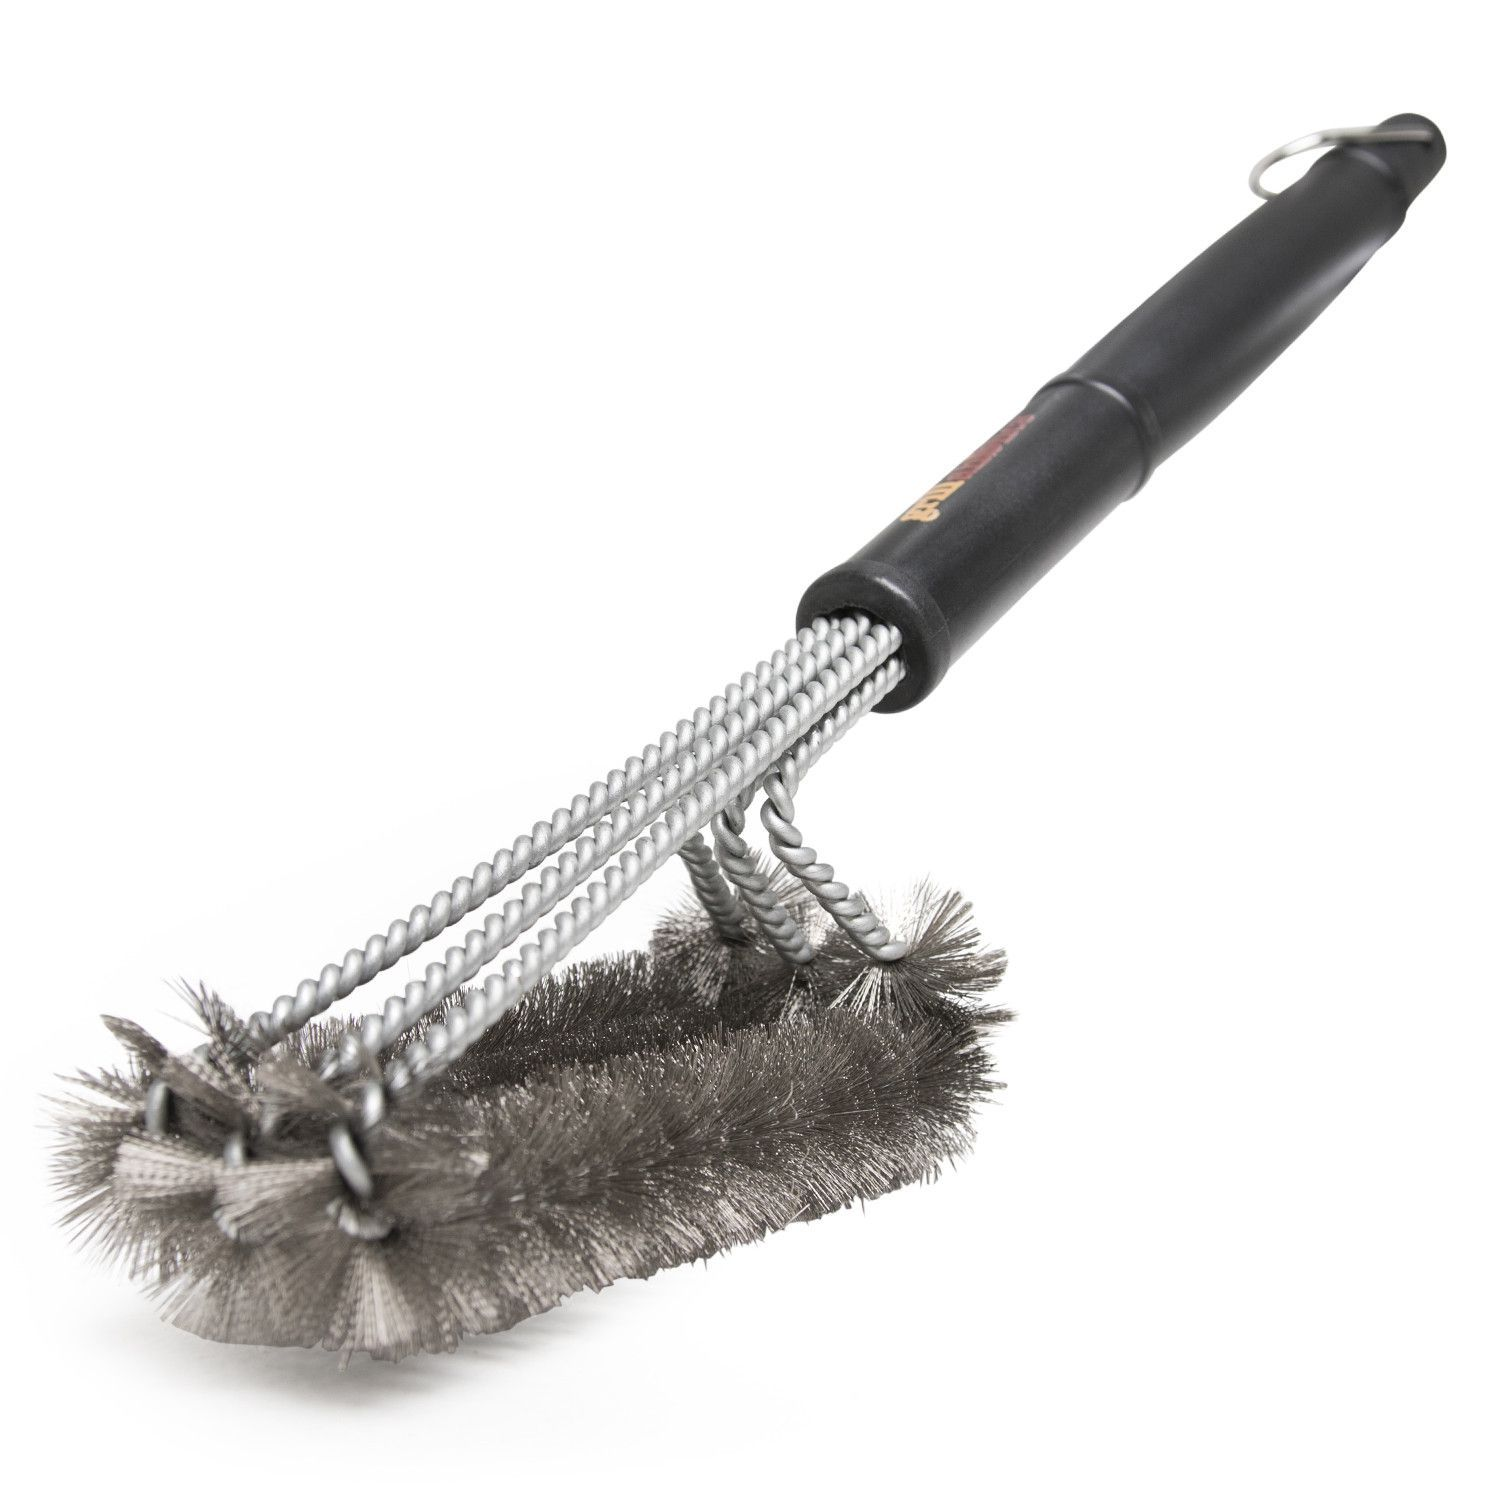 Essentials Steel Grill Brush Grill brush, Clean grill